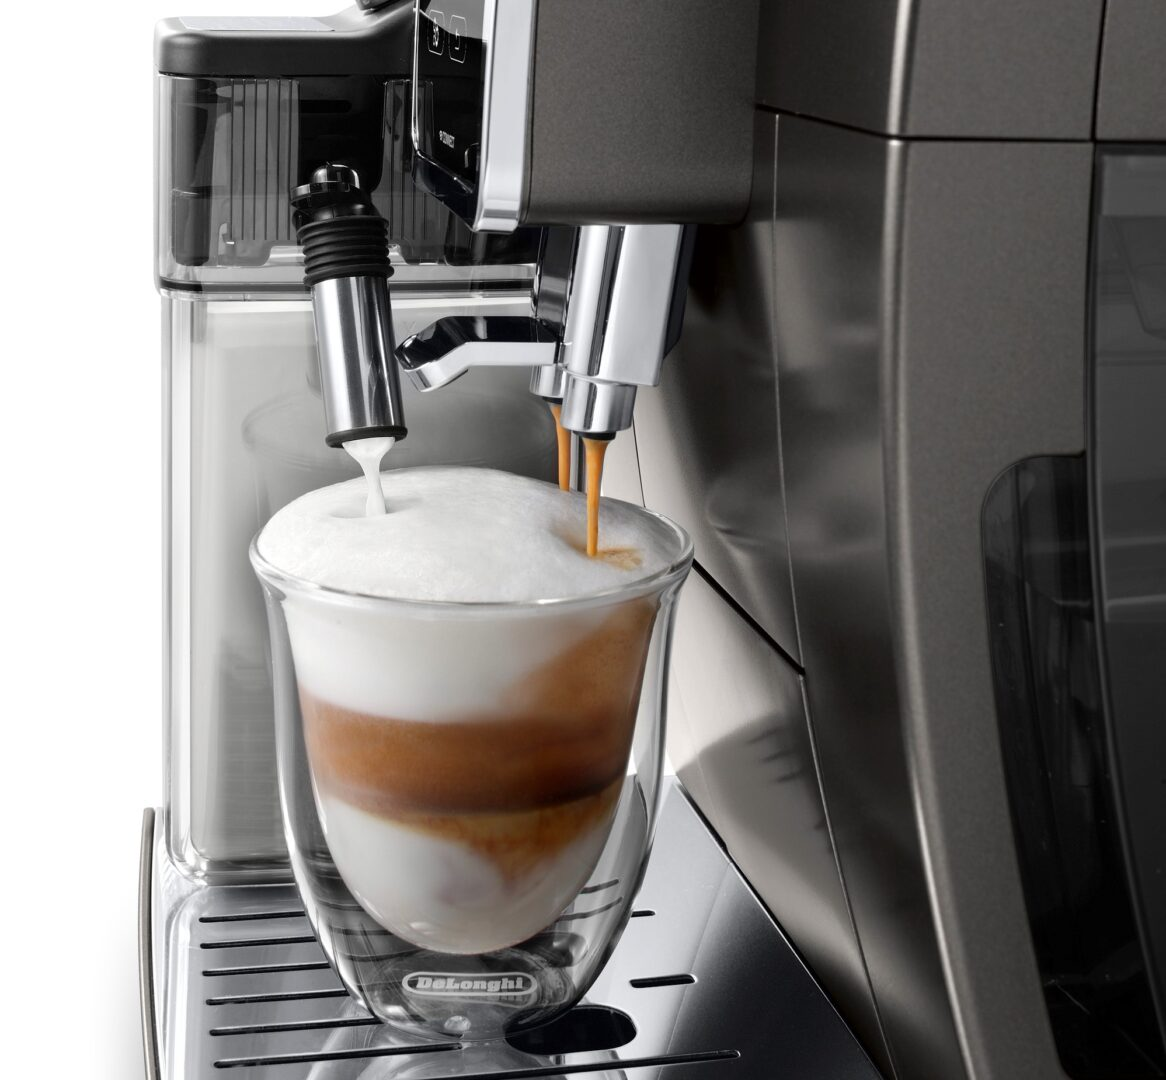 De'Longhi Dinamica Plus coffee machine extracting a cup of coffee